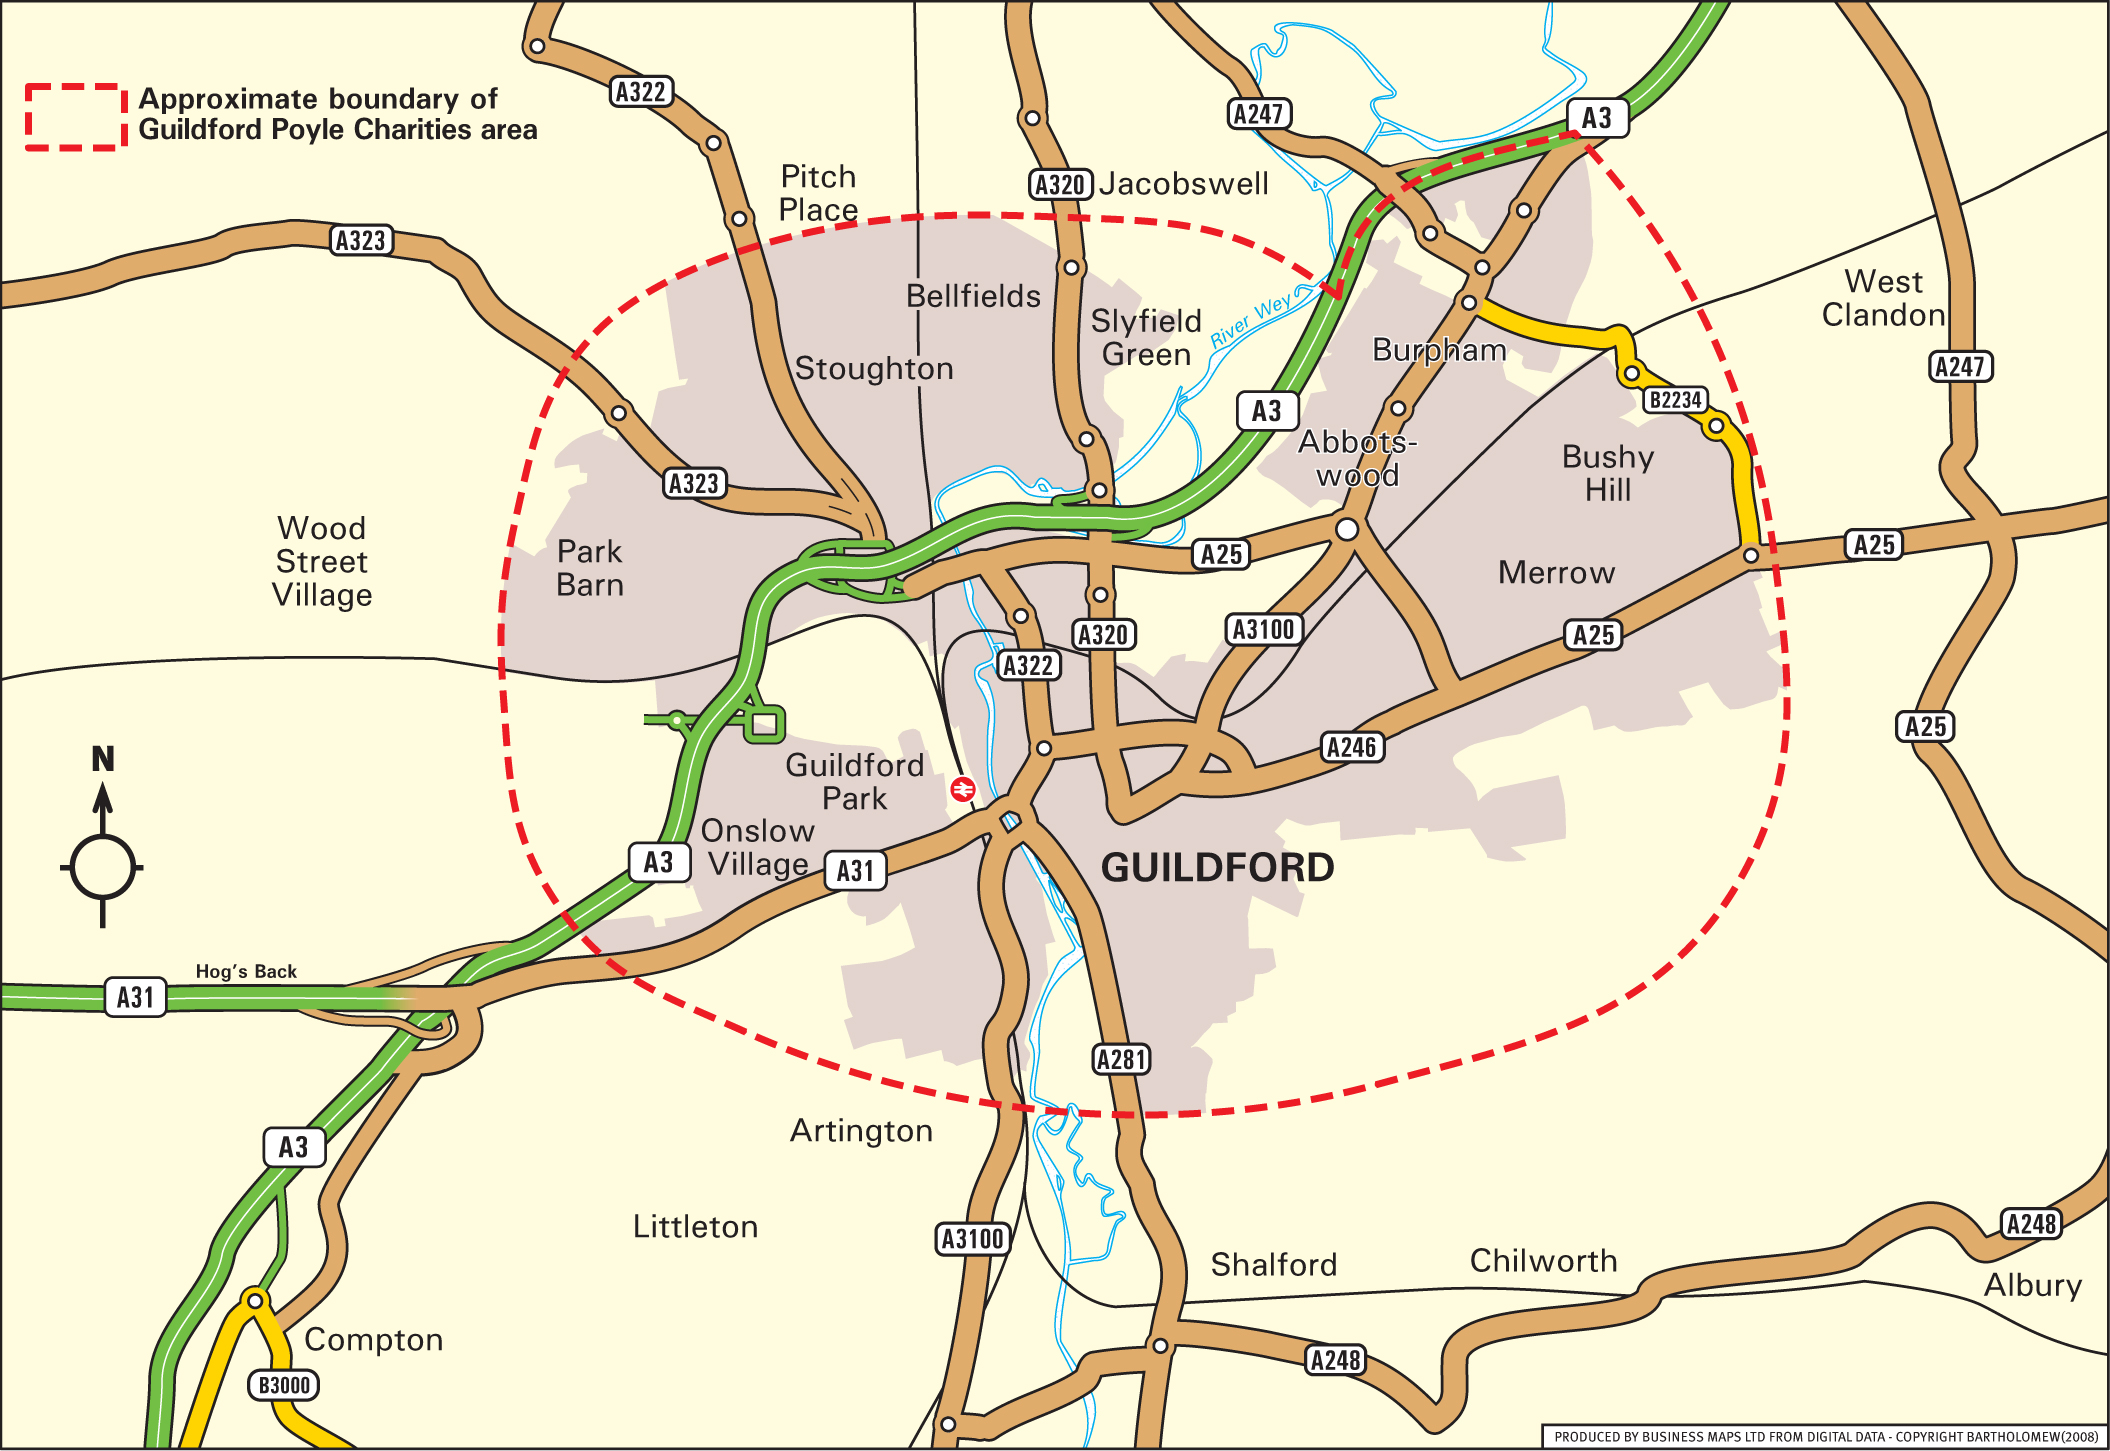 Map Of Guildford Guildford Poyle Charities: Home Page